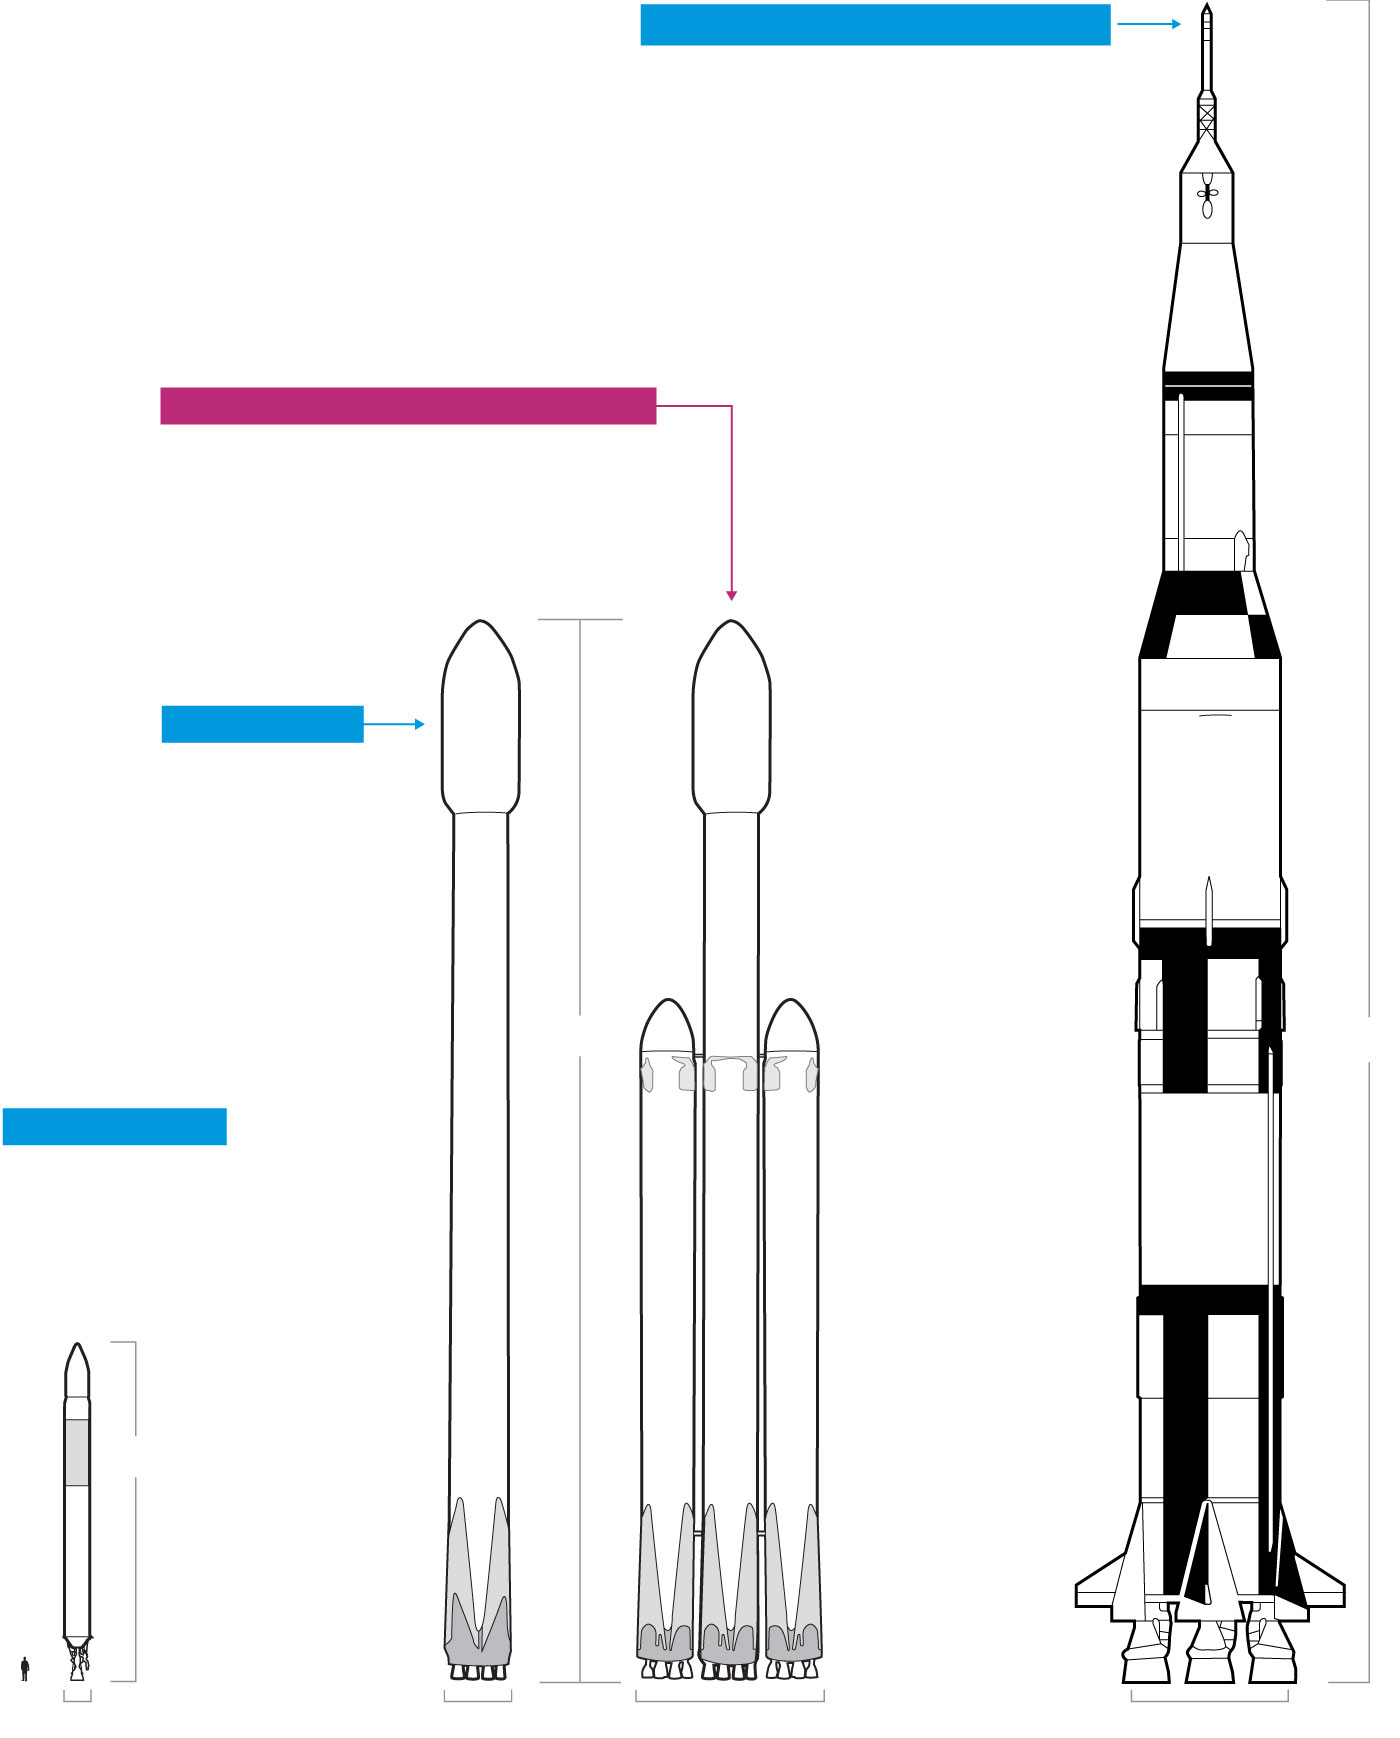 hight resolution of spacex s new falcon heavy is more powerful than any rocket currently in use but still not as large as the saturn v that launched astronauts to the moon